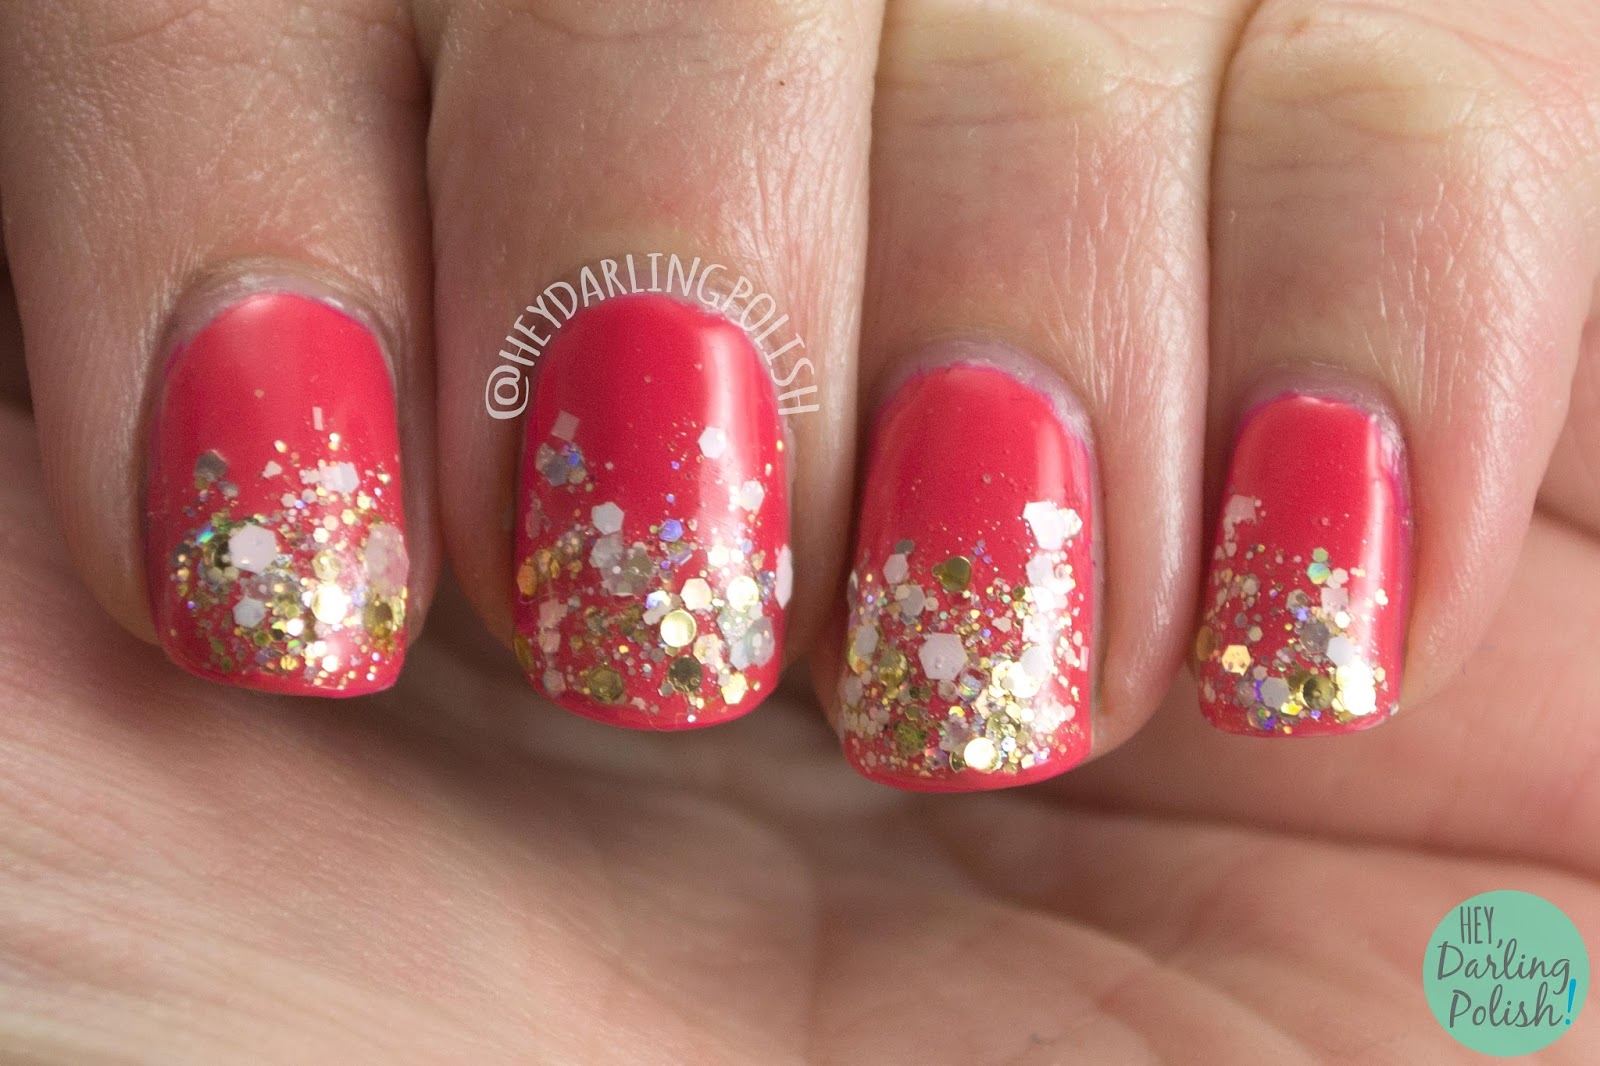 nails, nail polish, kbshimmer, pink, indie polish, let's not coral, glitter, glitter gradient, hey darling polish